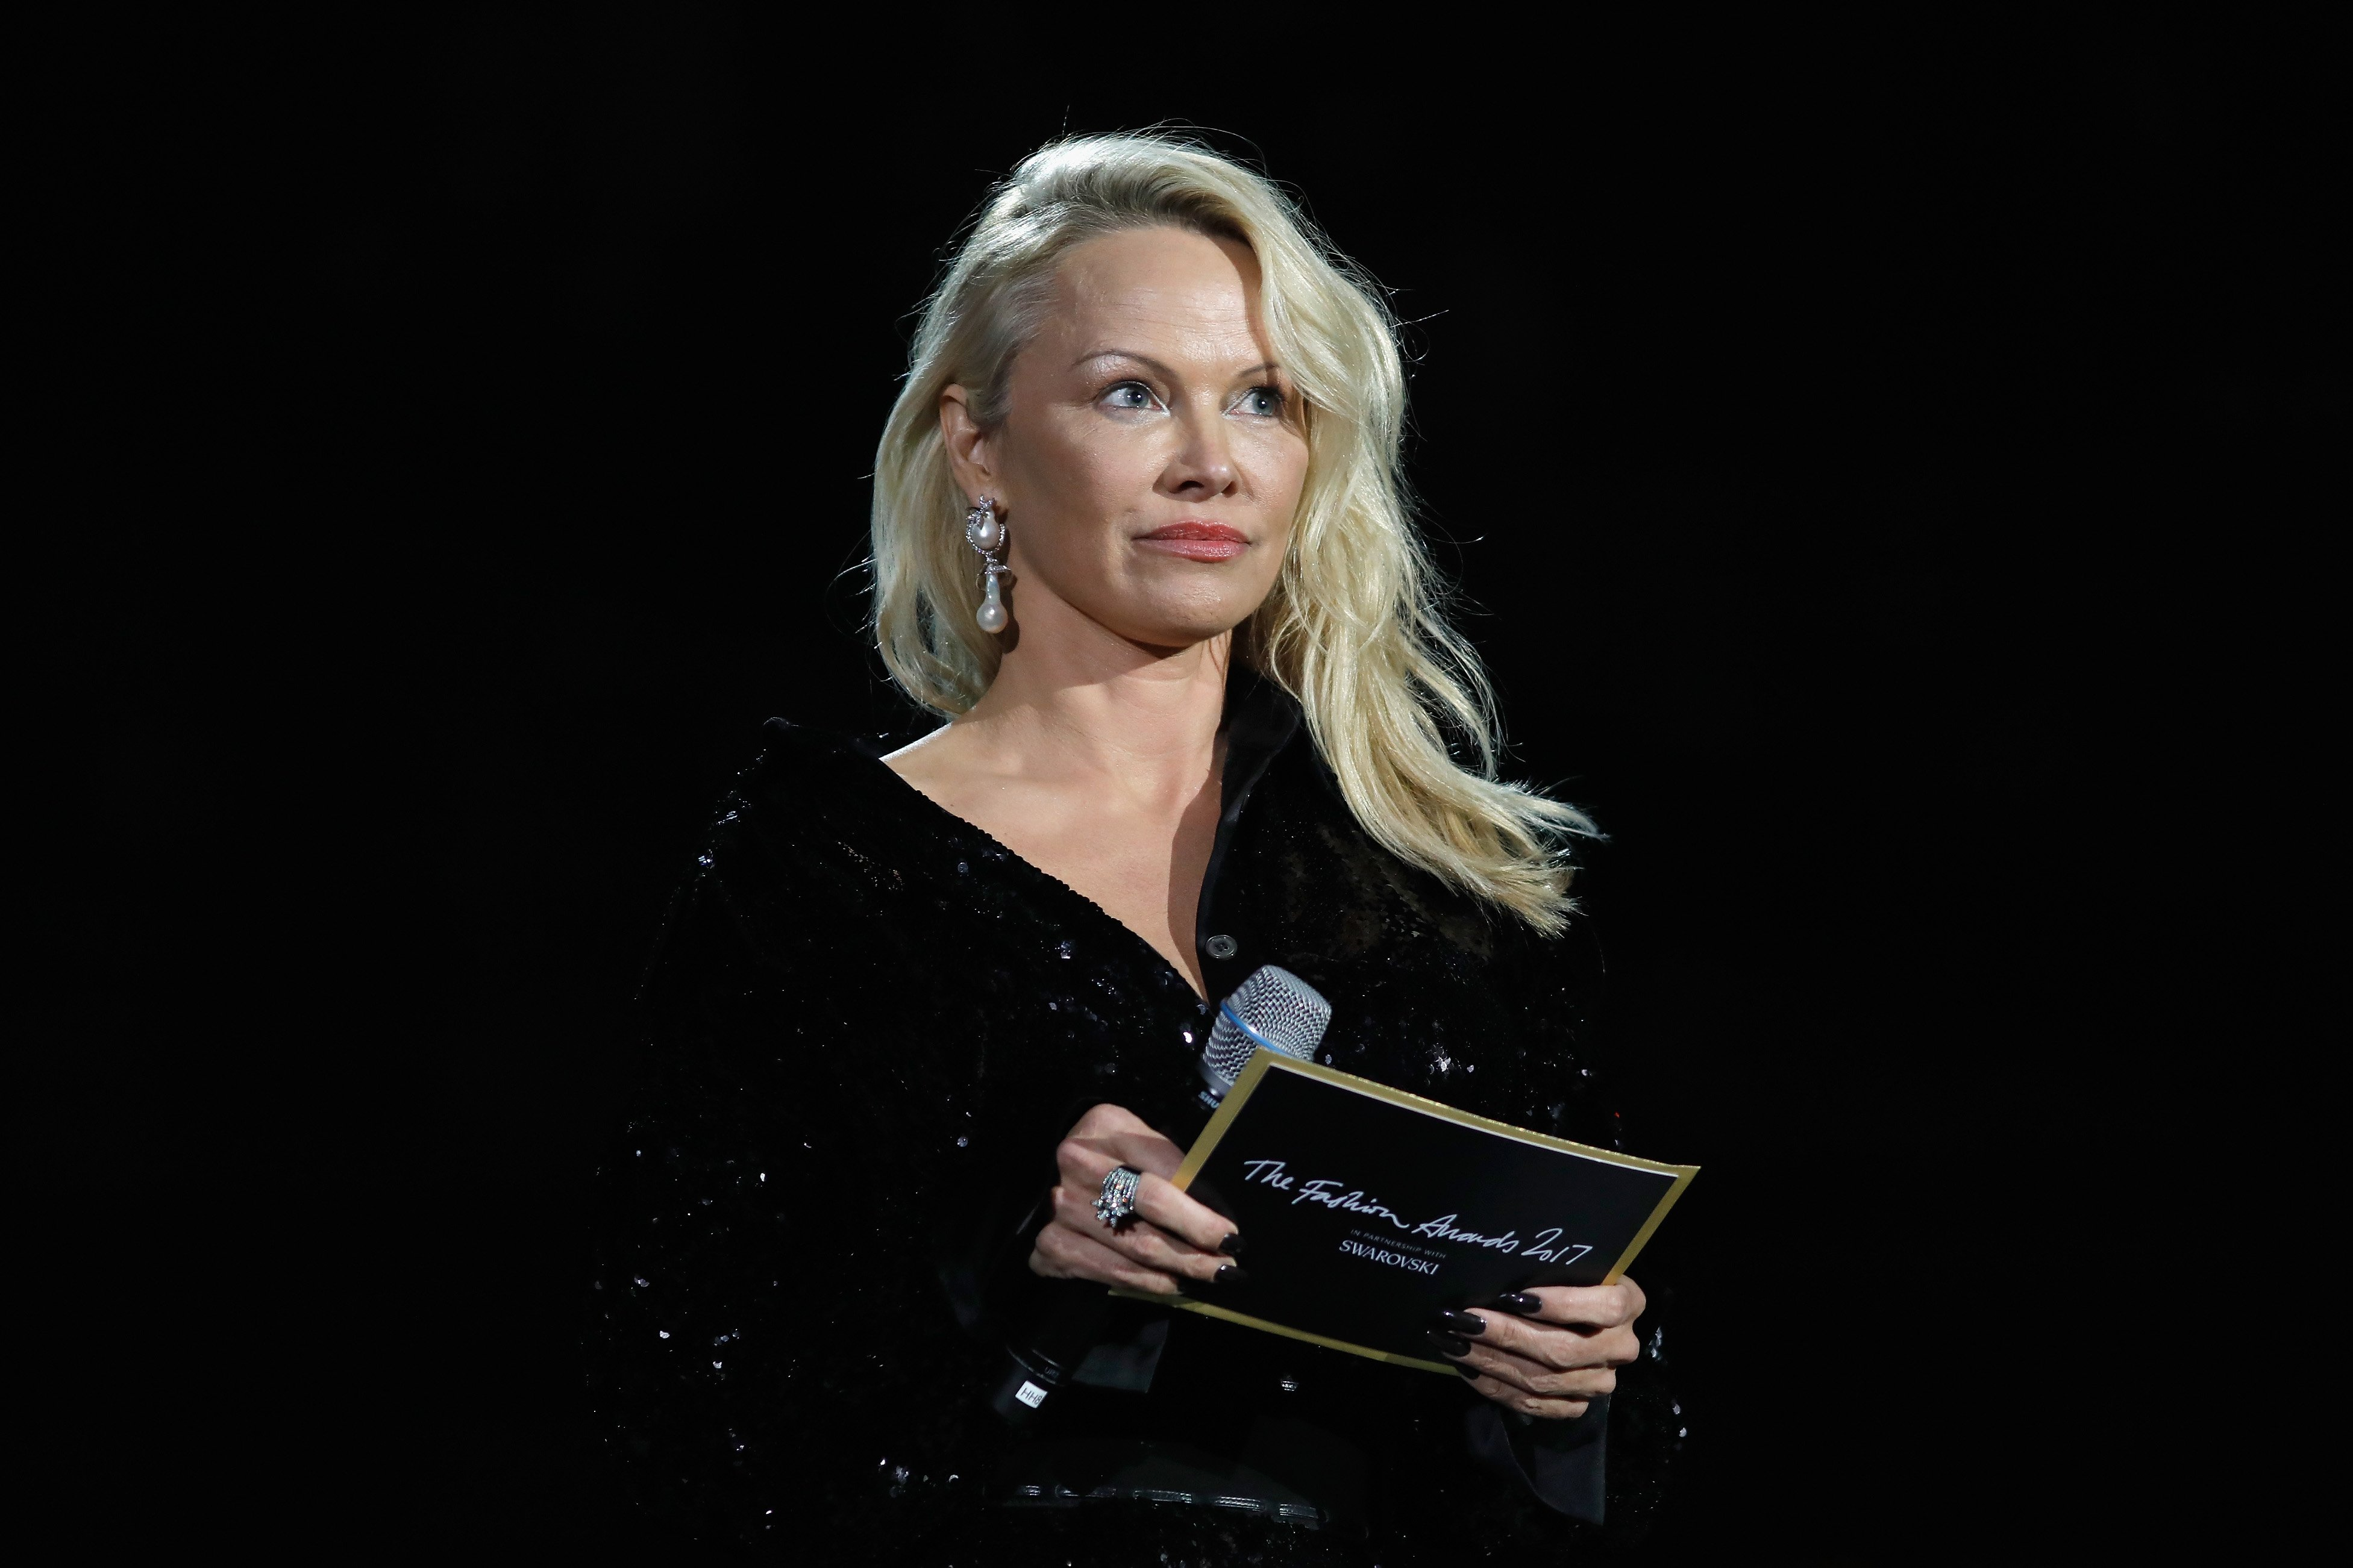 Pamela Anderson presenting an award during The Fashion Awards 2017 at the Royal Albert Hall in London, England | Photo: Getty Images